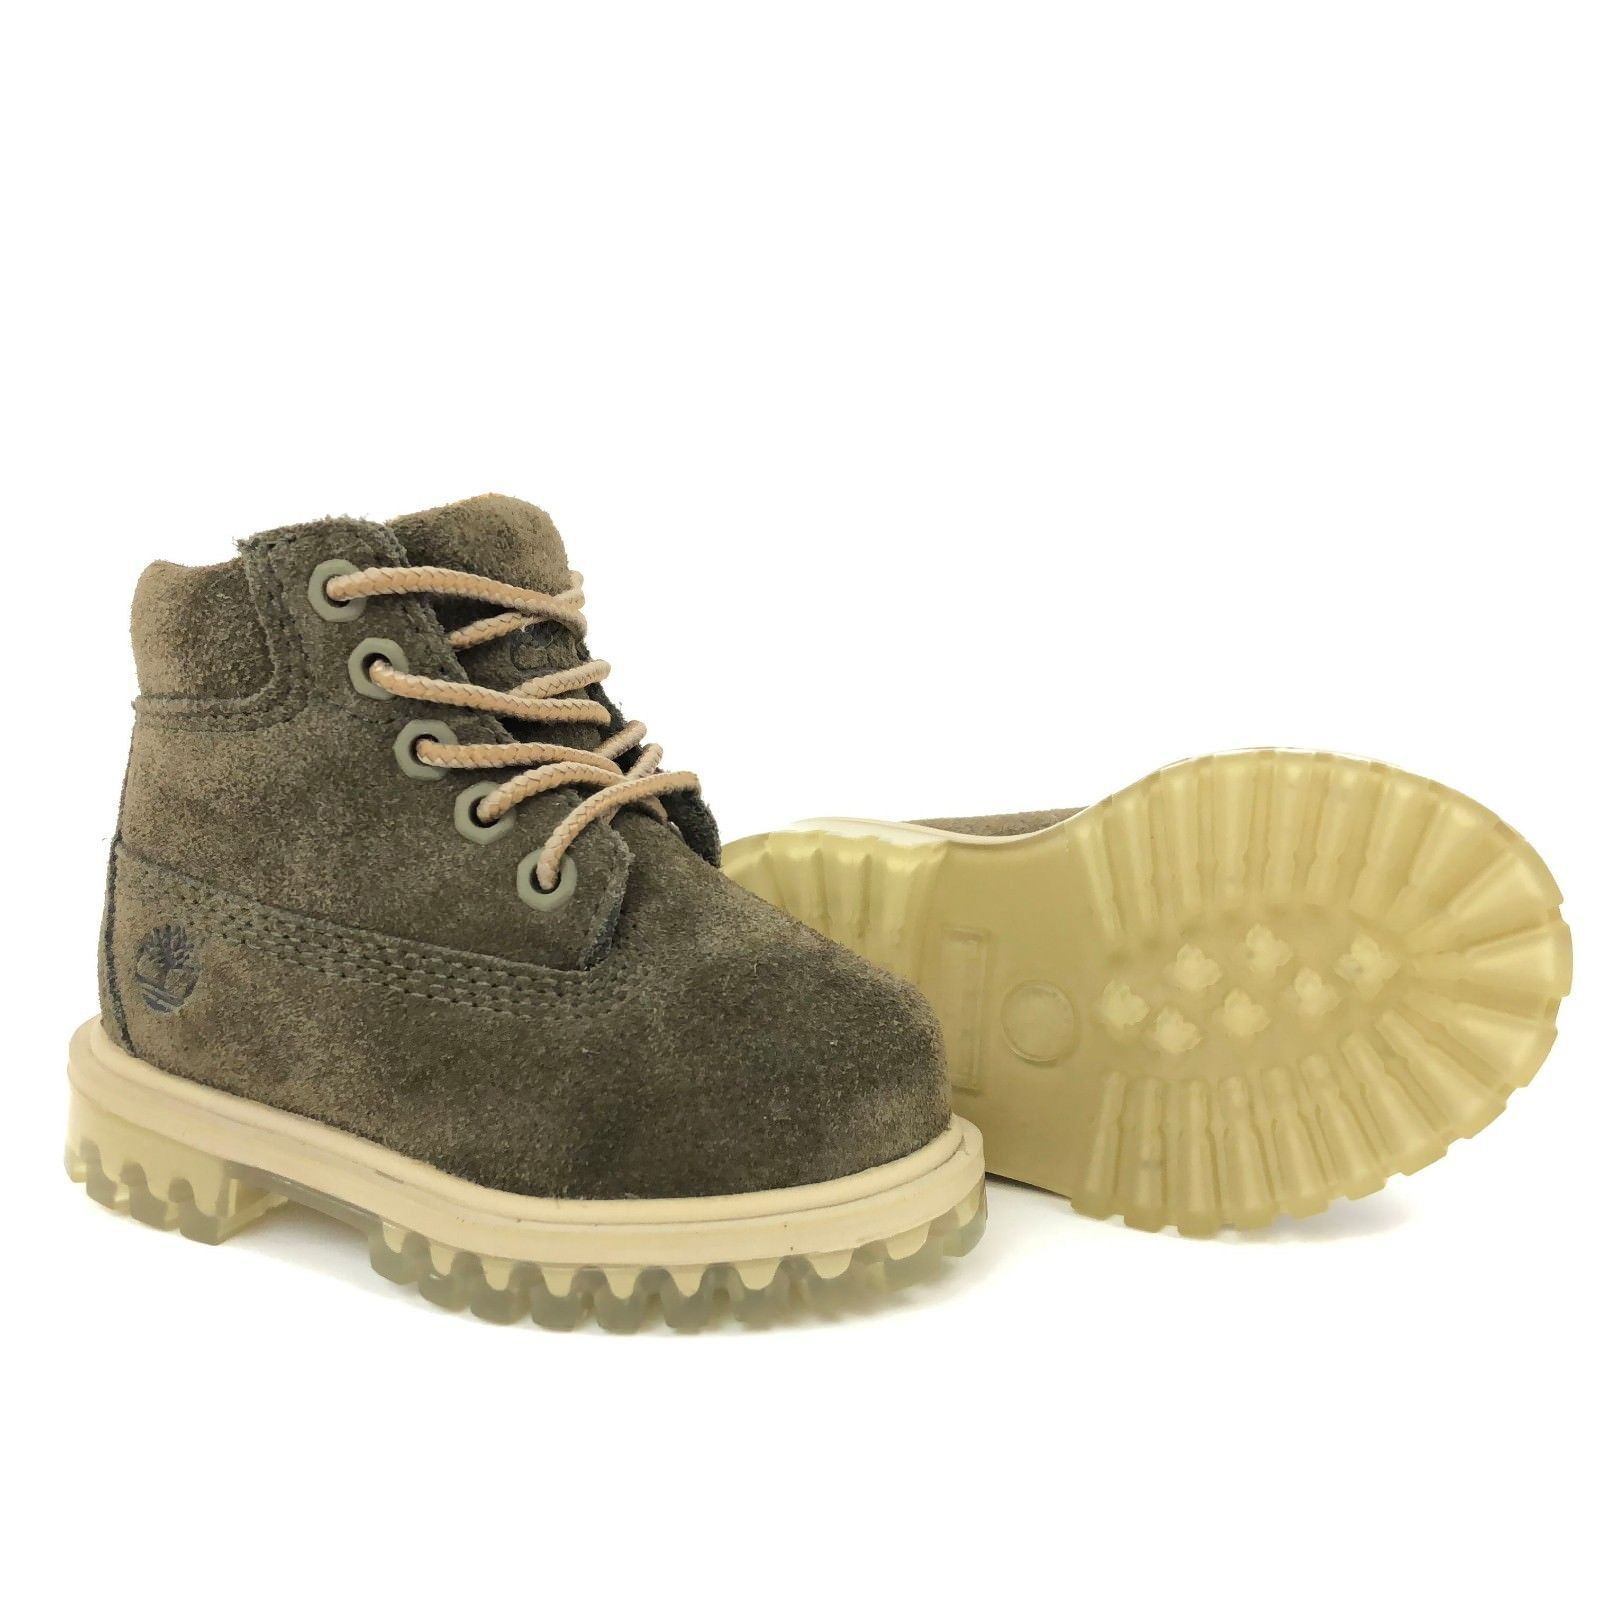 """Timberland Toddler's 6"""" Premium Dark Green Suede Boots A1BM2 LIMITED RELEASE"""